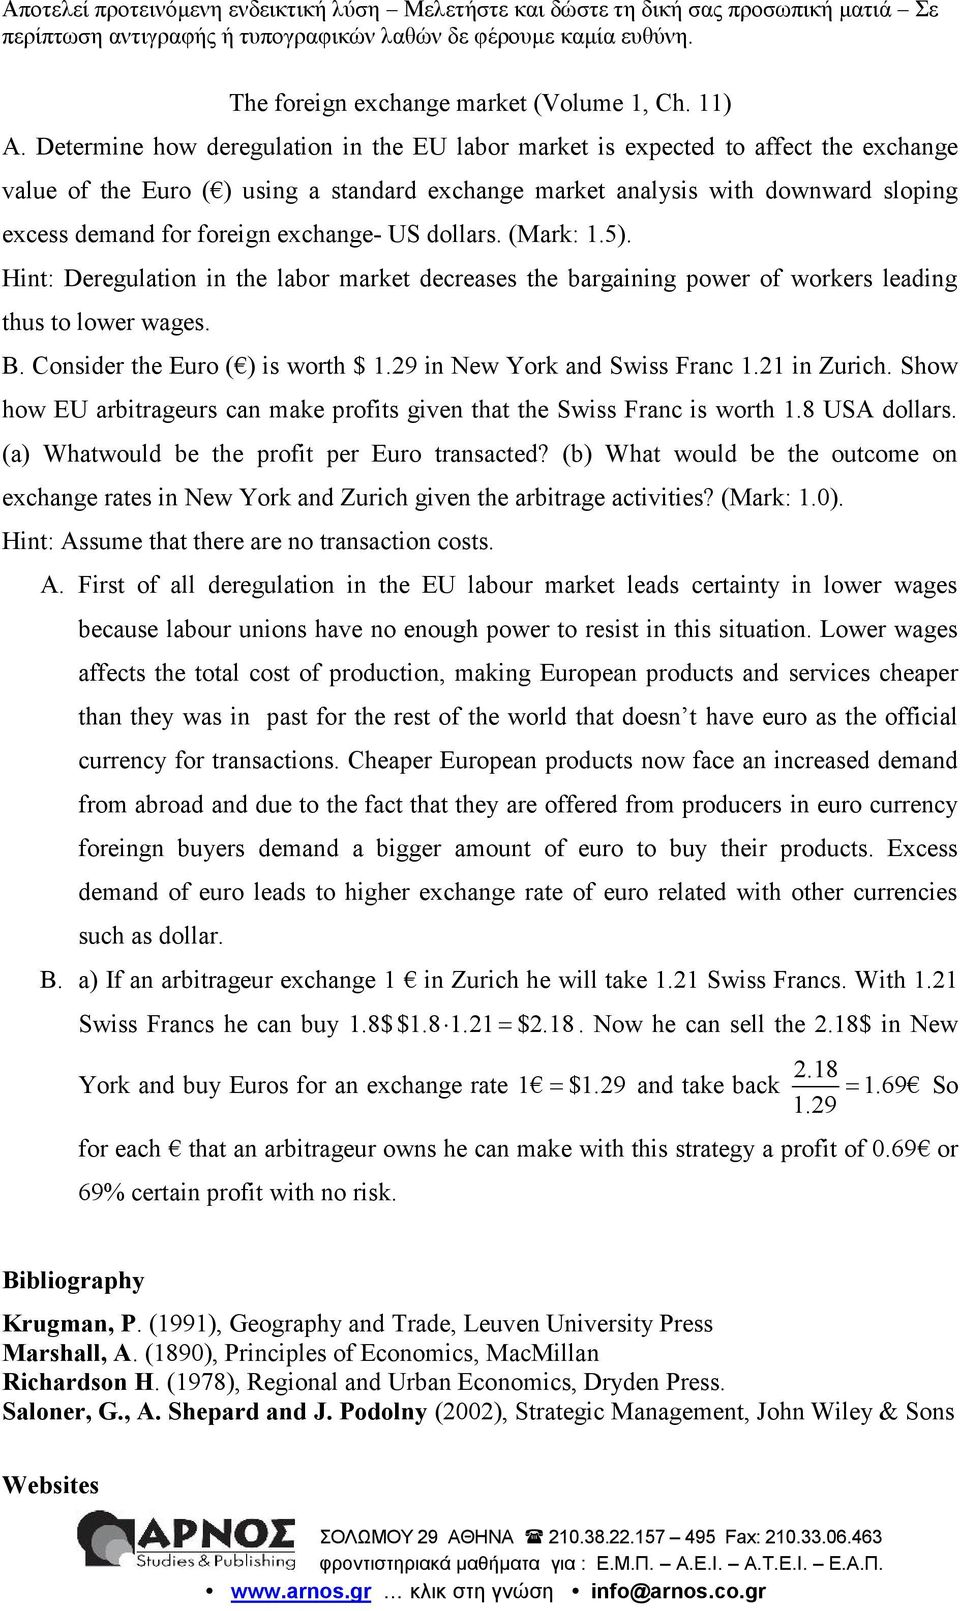 (Mrk: 1.5). Hint: Deregultion in the lbor mrket decreses the brgining power of workers leding thus to lower wges. B. Consider the Euro ( ) is worth $ 1.29 in New York nd Swiss Frnc 1.21 in Zurich.